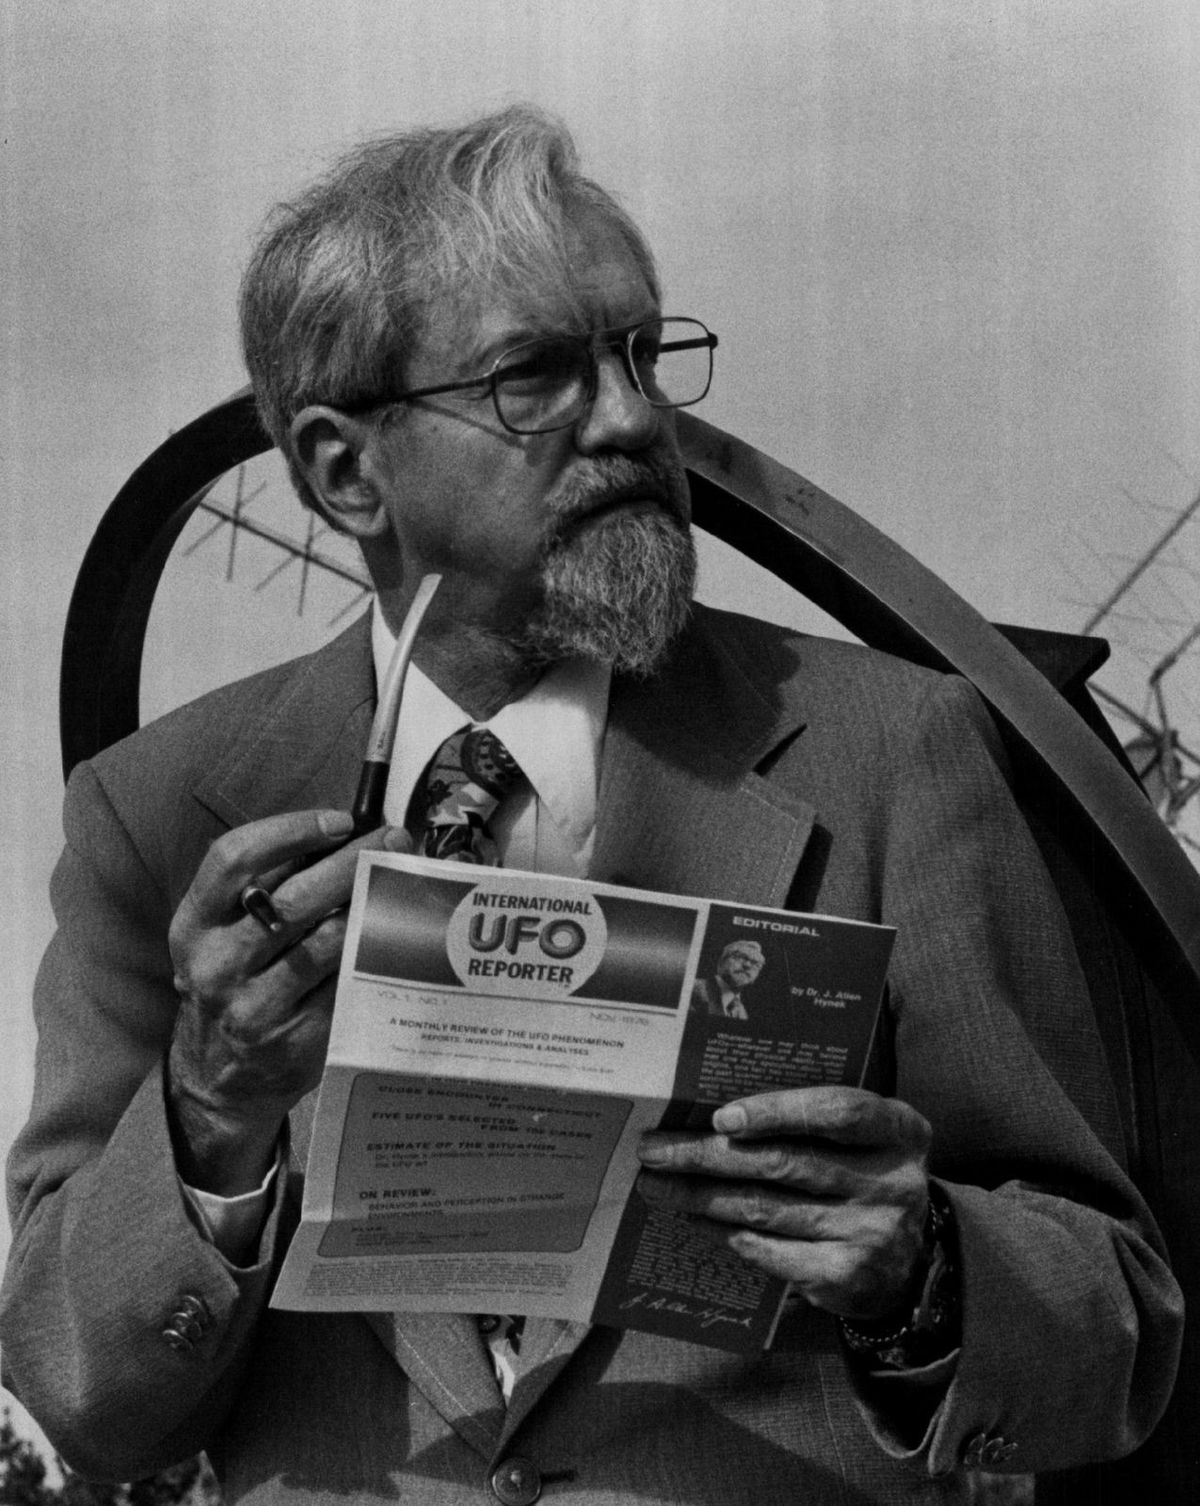 """J. Allen Hynek in 1977. He was a technical adviser and consultant for the Steven Spielberg movie """"Close Encounters of the Third Kind."""""""